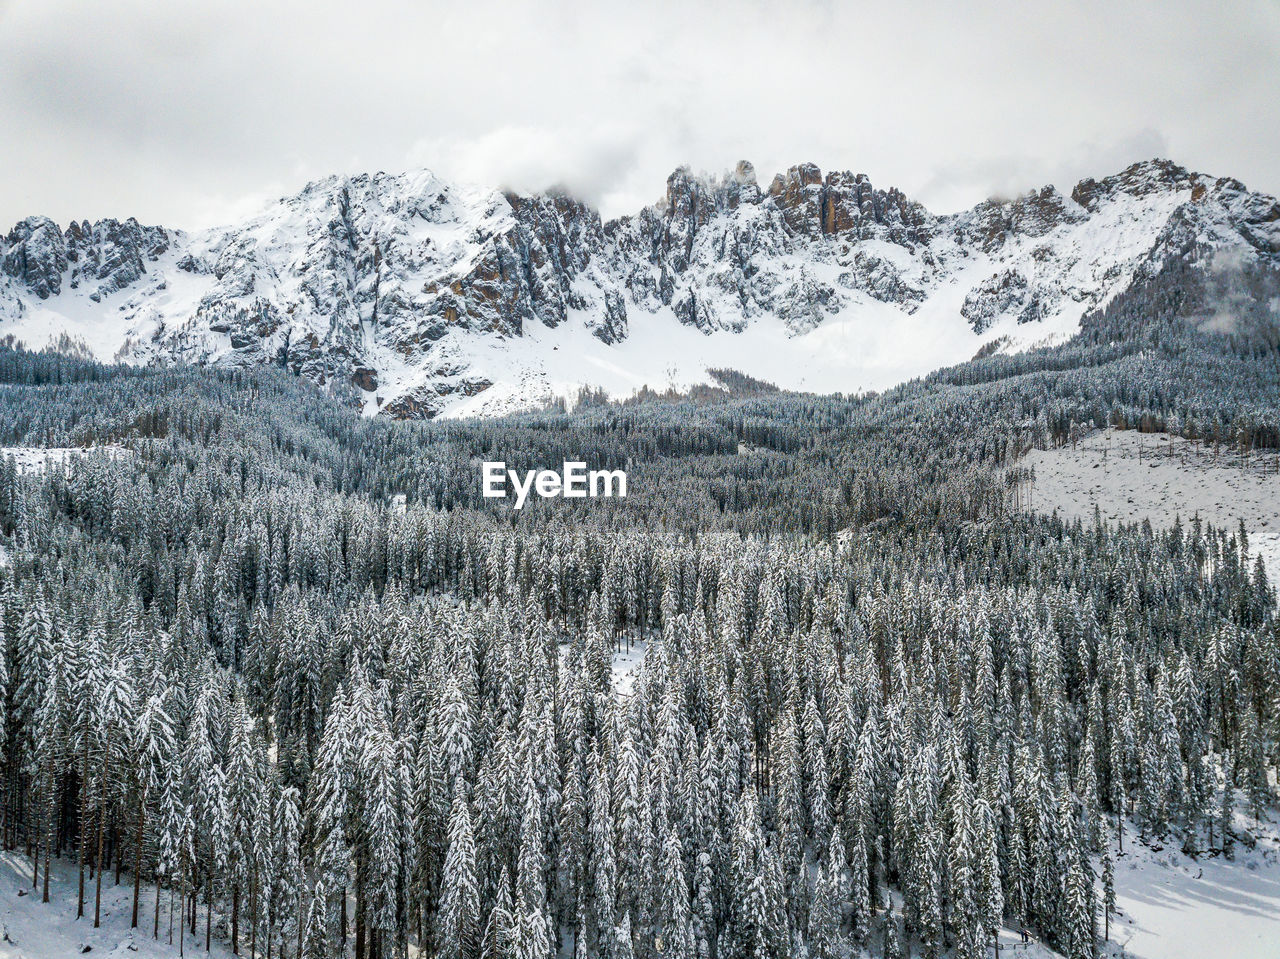 snow, winter, cold temperature, beauty in nature, scenics - nature, mountain, plant, tree, tranquil scene, tranquility, environment, snowcapped mountain, no people, nature, sky, day, non-urban scene, land, mountain range, outdoors, pine tree, coniferous tree, powder snow